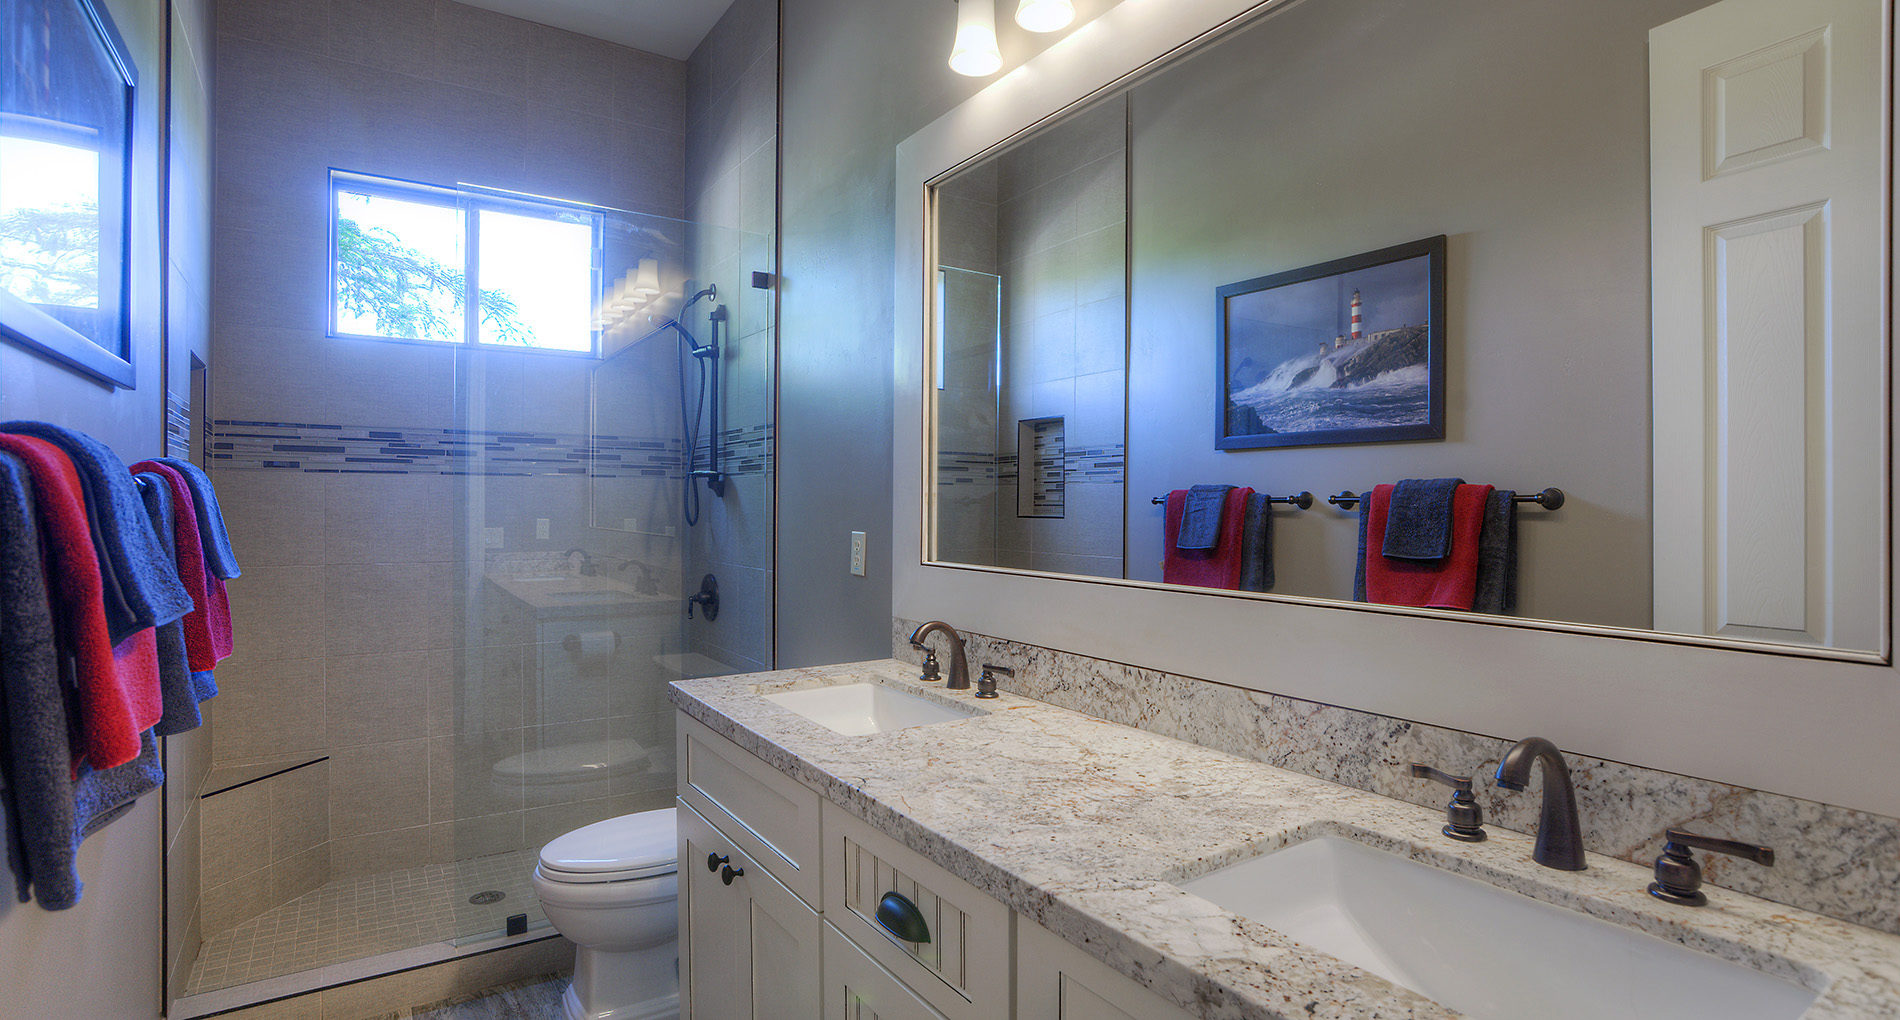 Bathroom Remodel Chandler Dalelane Slider